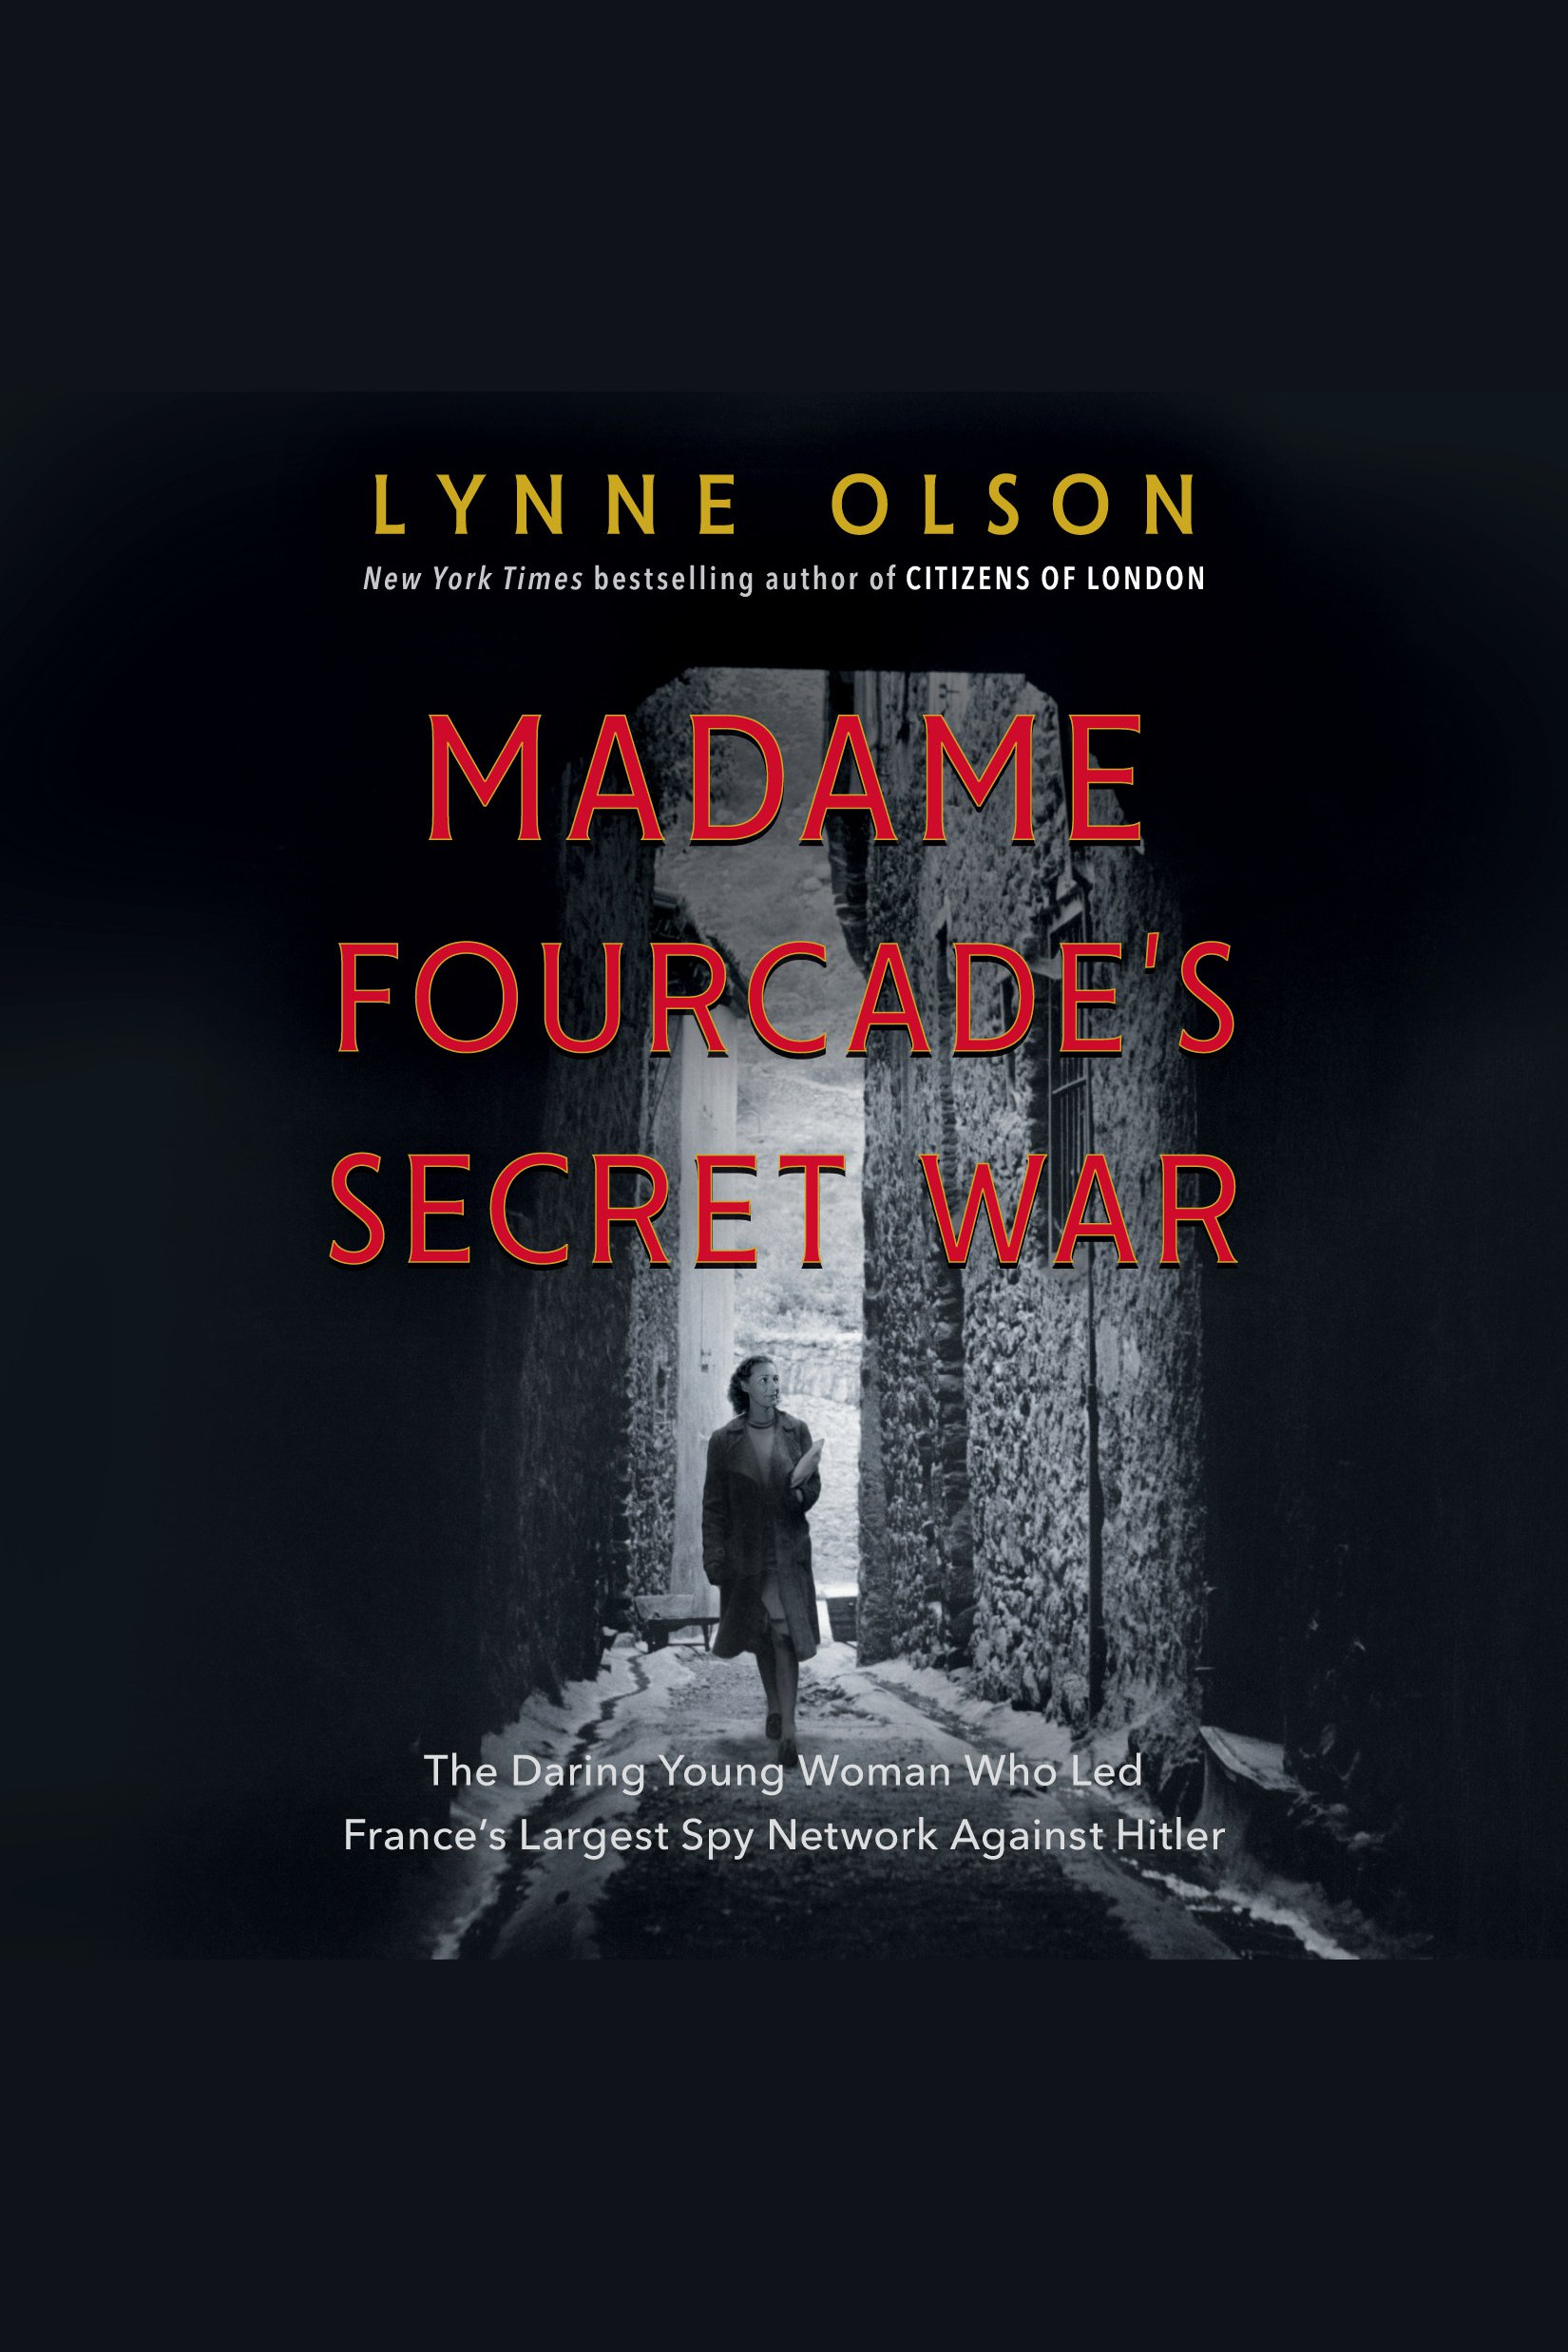 Madame Fourcade's Secret War [electronic resource] : The Daring Young Woman Who Led France's Largest Spy Network Against Hitler